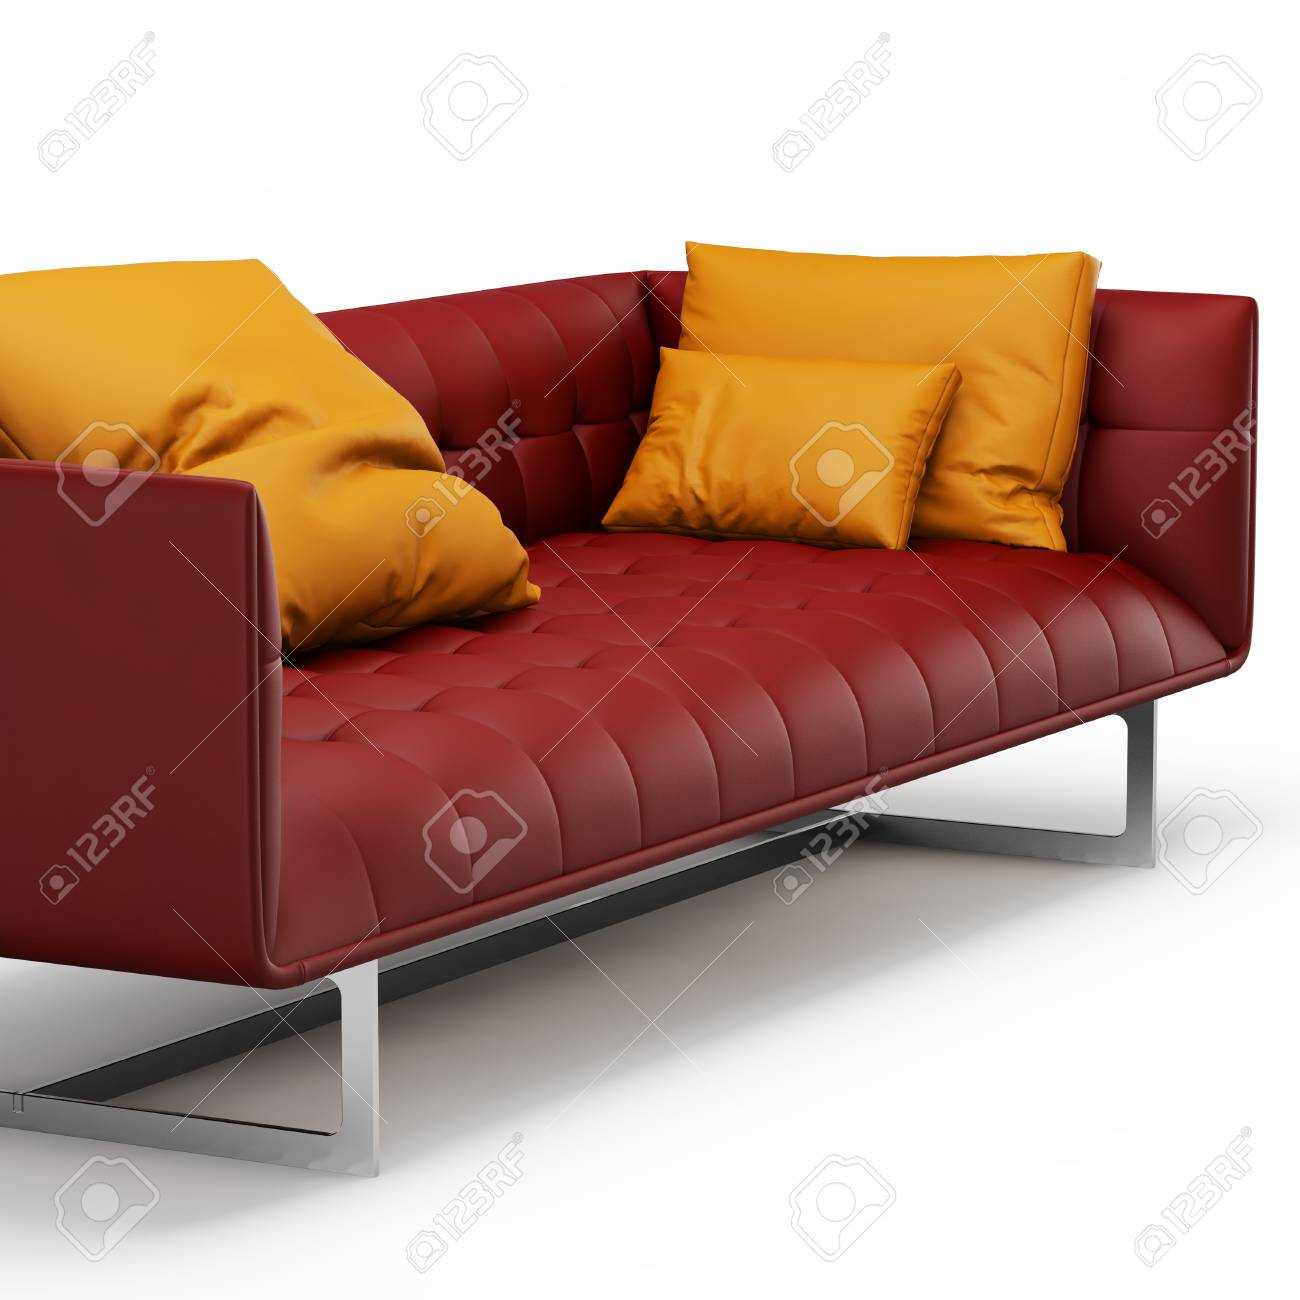 Red Leather Sofa With Orange Pillows On A White Background 3d Stock Photo Picture And Royalty Free Image Image 117423878